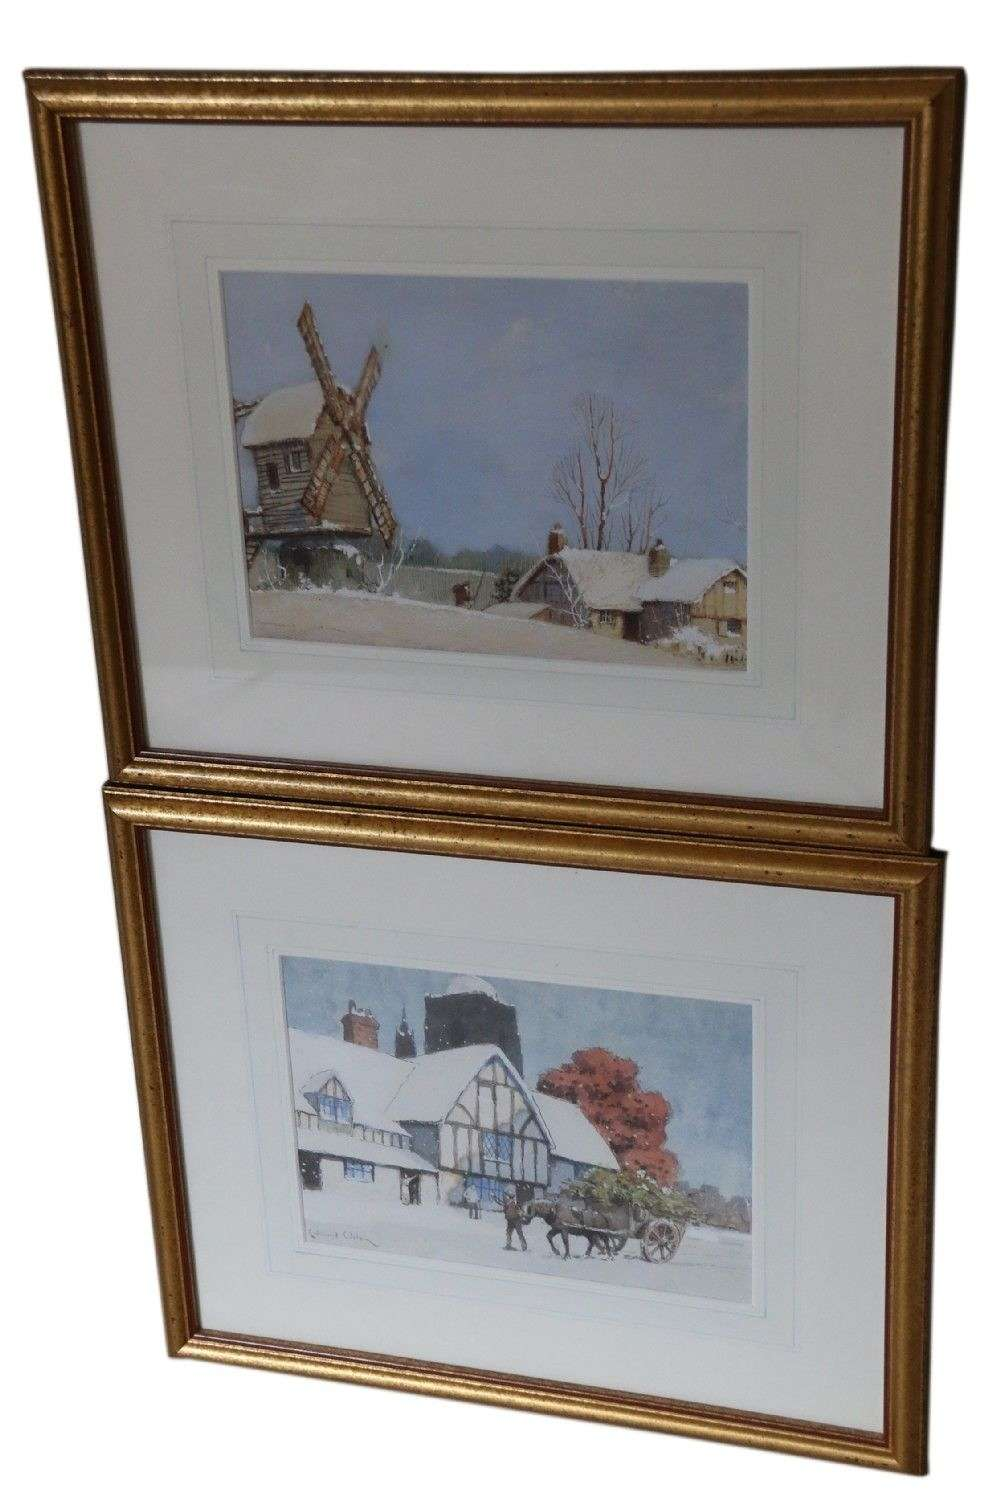 A Fine Pair Of 1930's Watercolours By Ernest Uden, Of Snowy Landscapes.